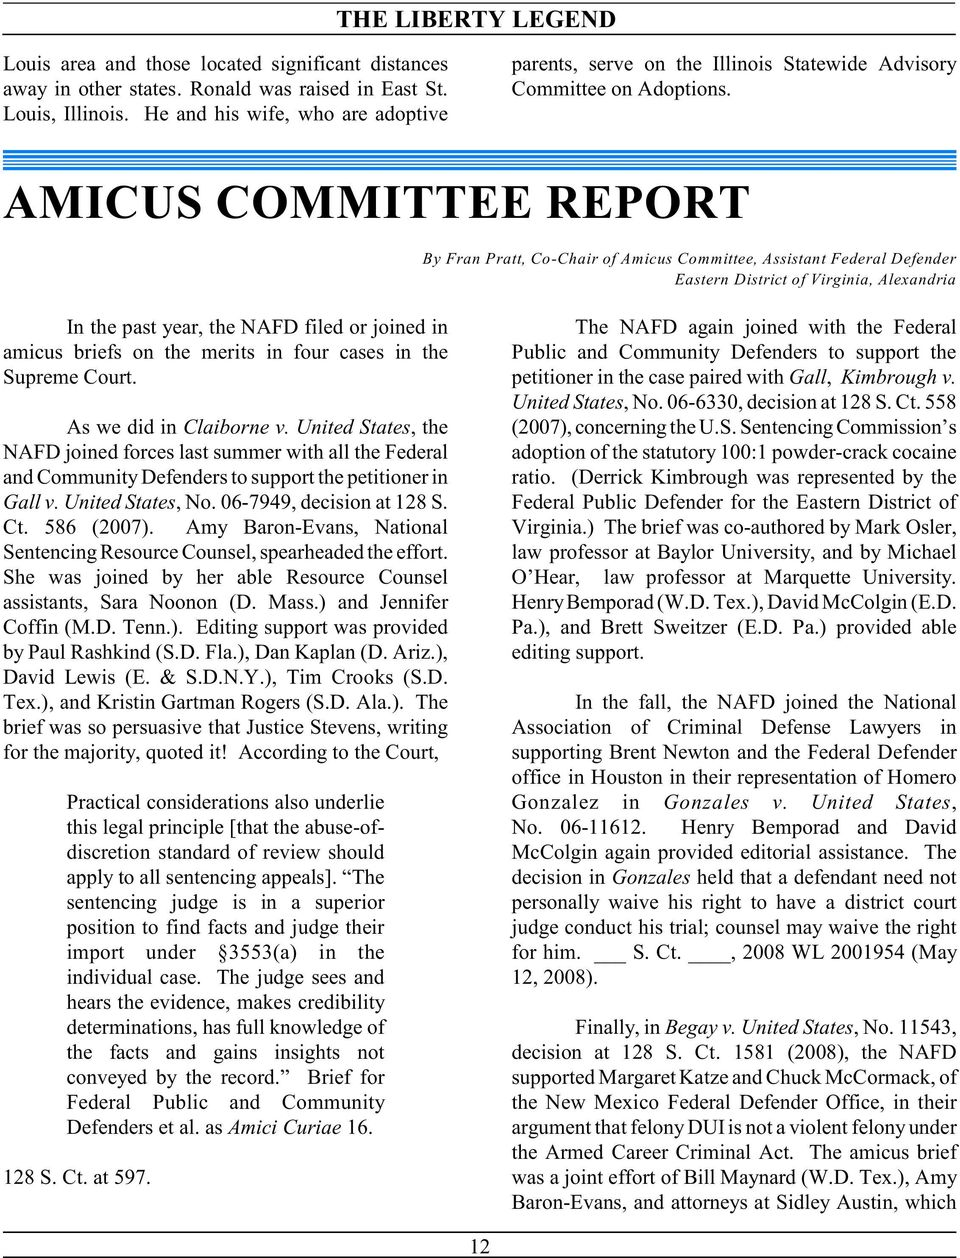 AMICUS COMMITTEE REPORT By Fran Pratt, Co-Chair of Amicus Committee, Assistant Federal Defender Eastern District of Virginia, Alexandria In the past year, the NAFD filed or joined in amicus briefs on